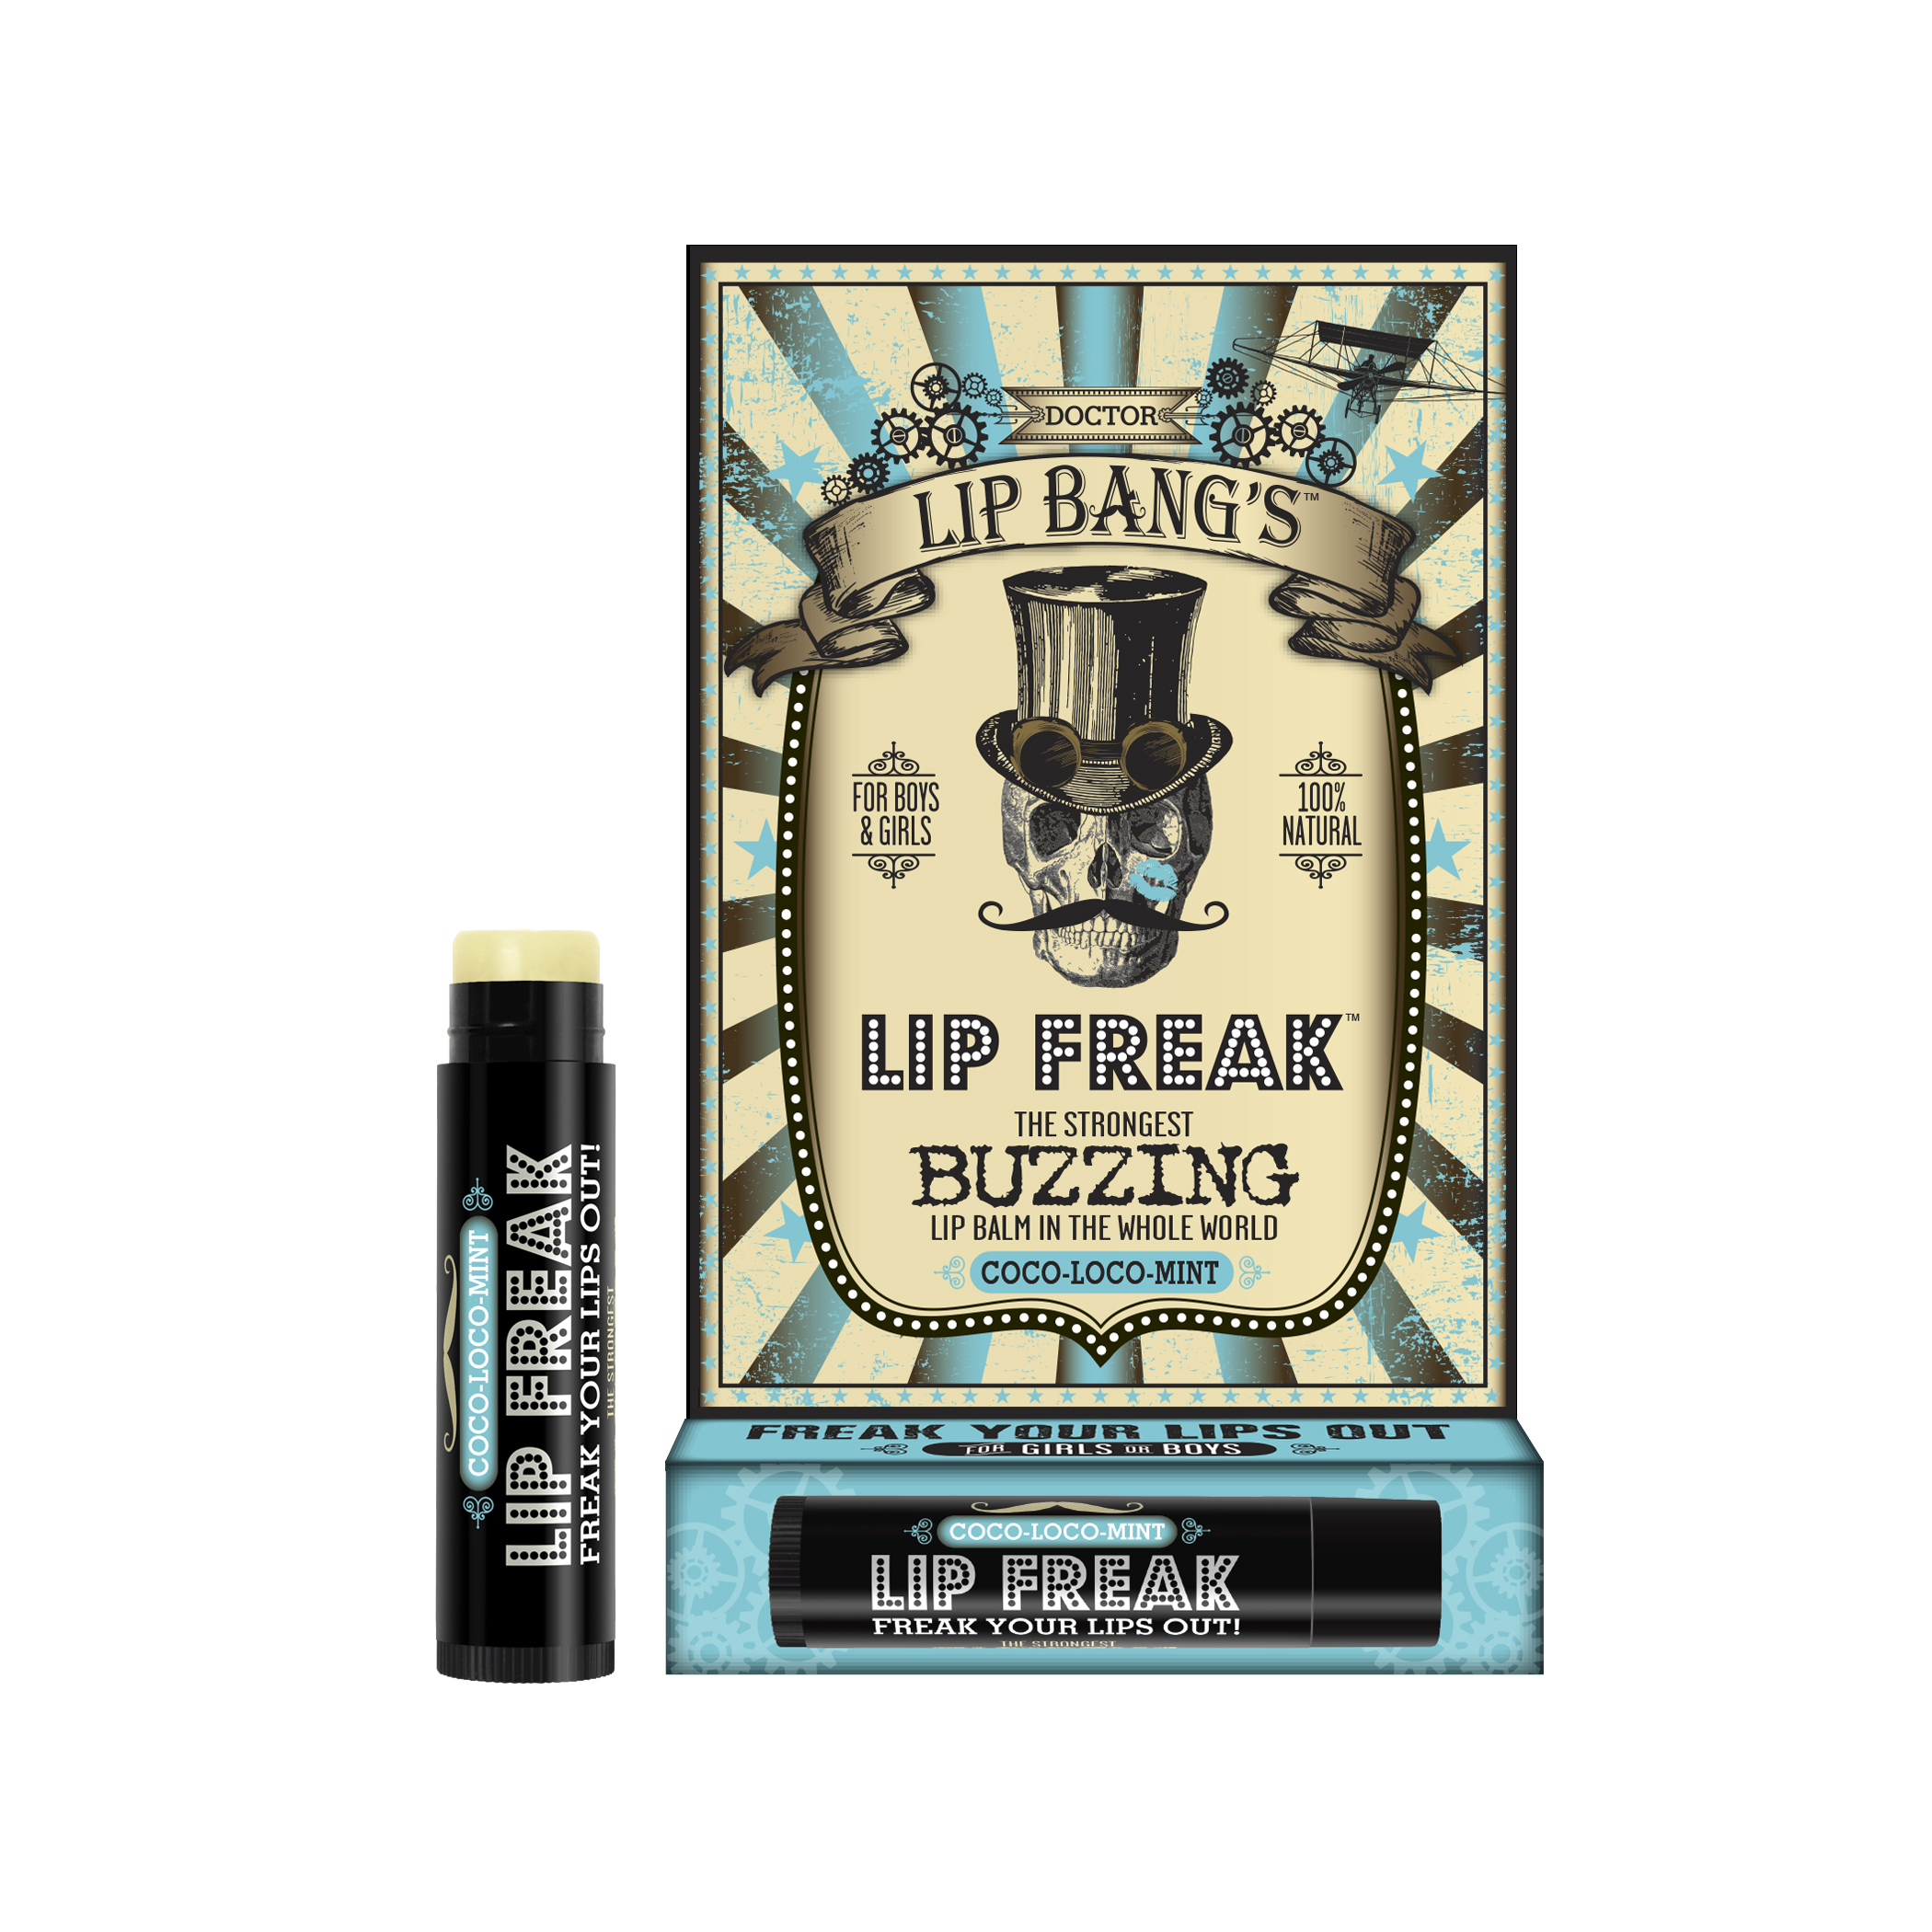 Dr. Lip Bang's Lip Freak Buzzing Lip Balm